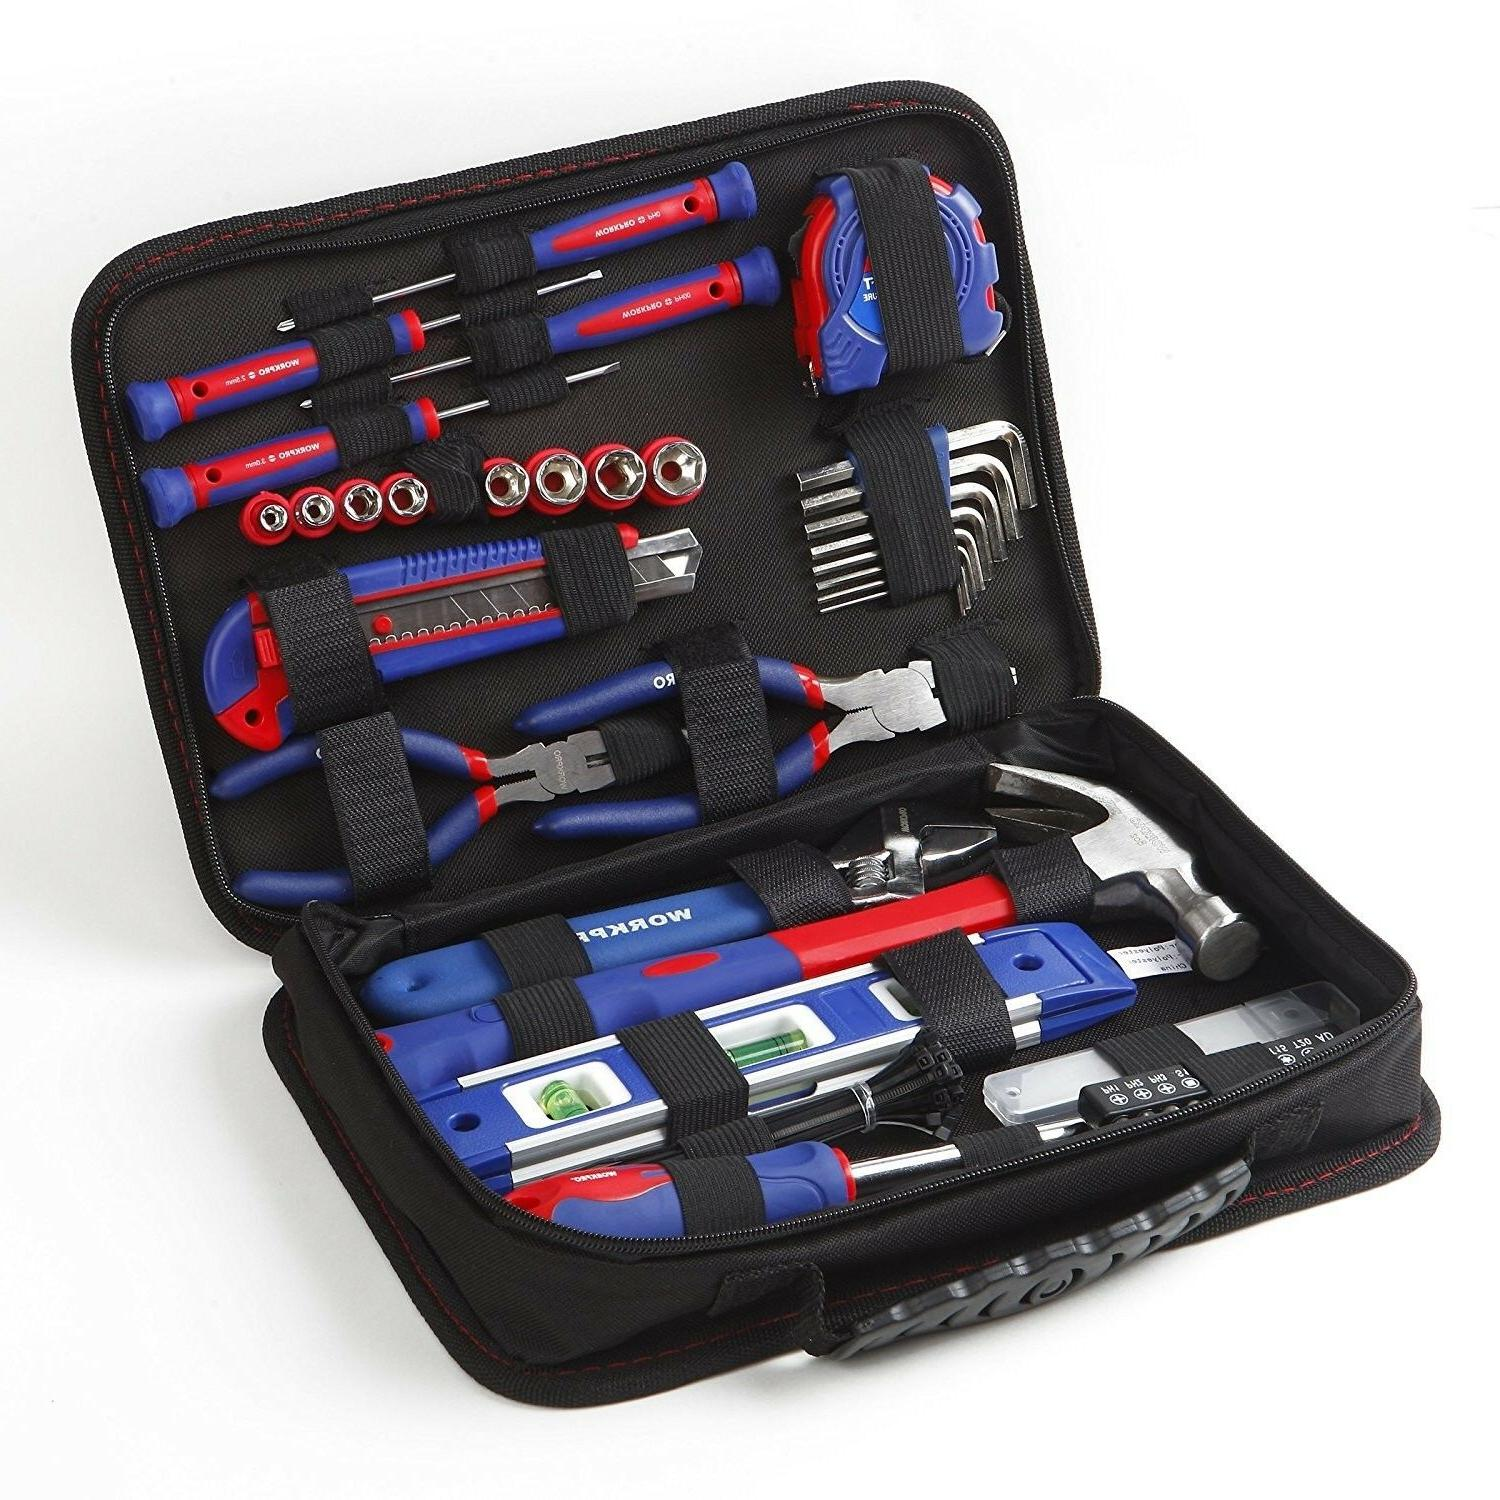 WORKPRO Kit 100-Piece Carrying Po fits